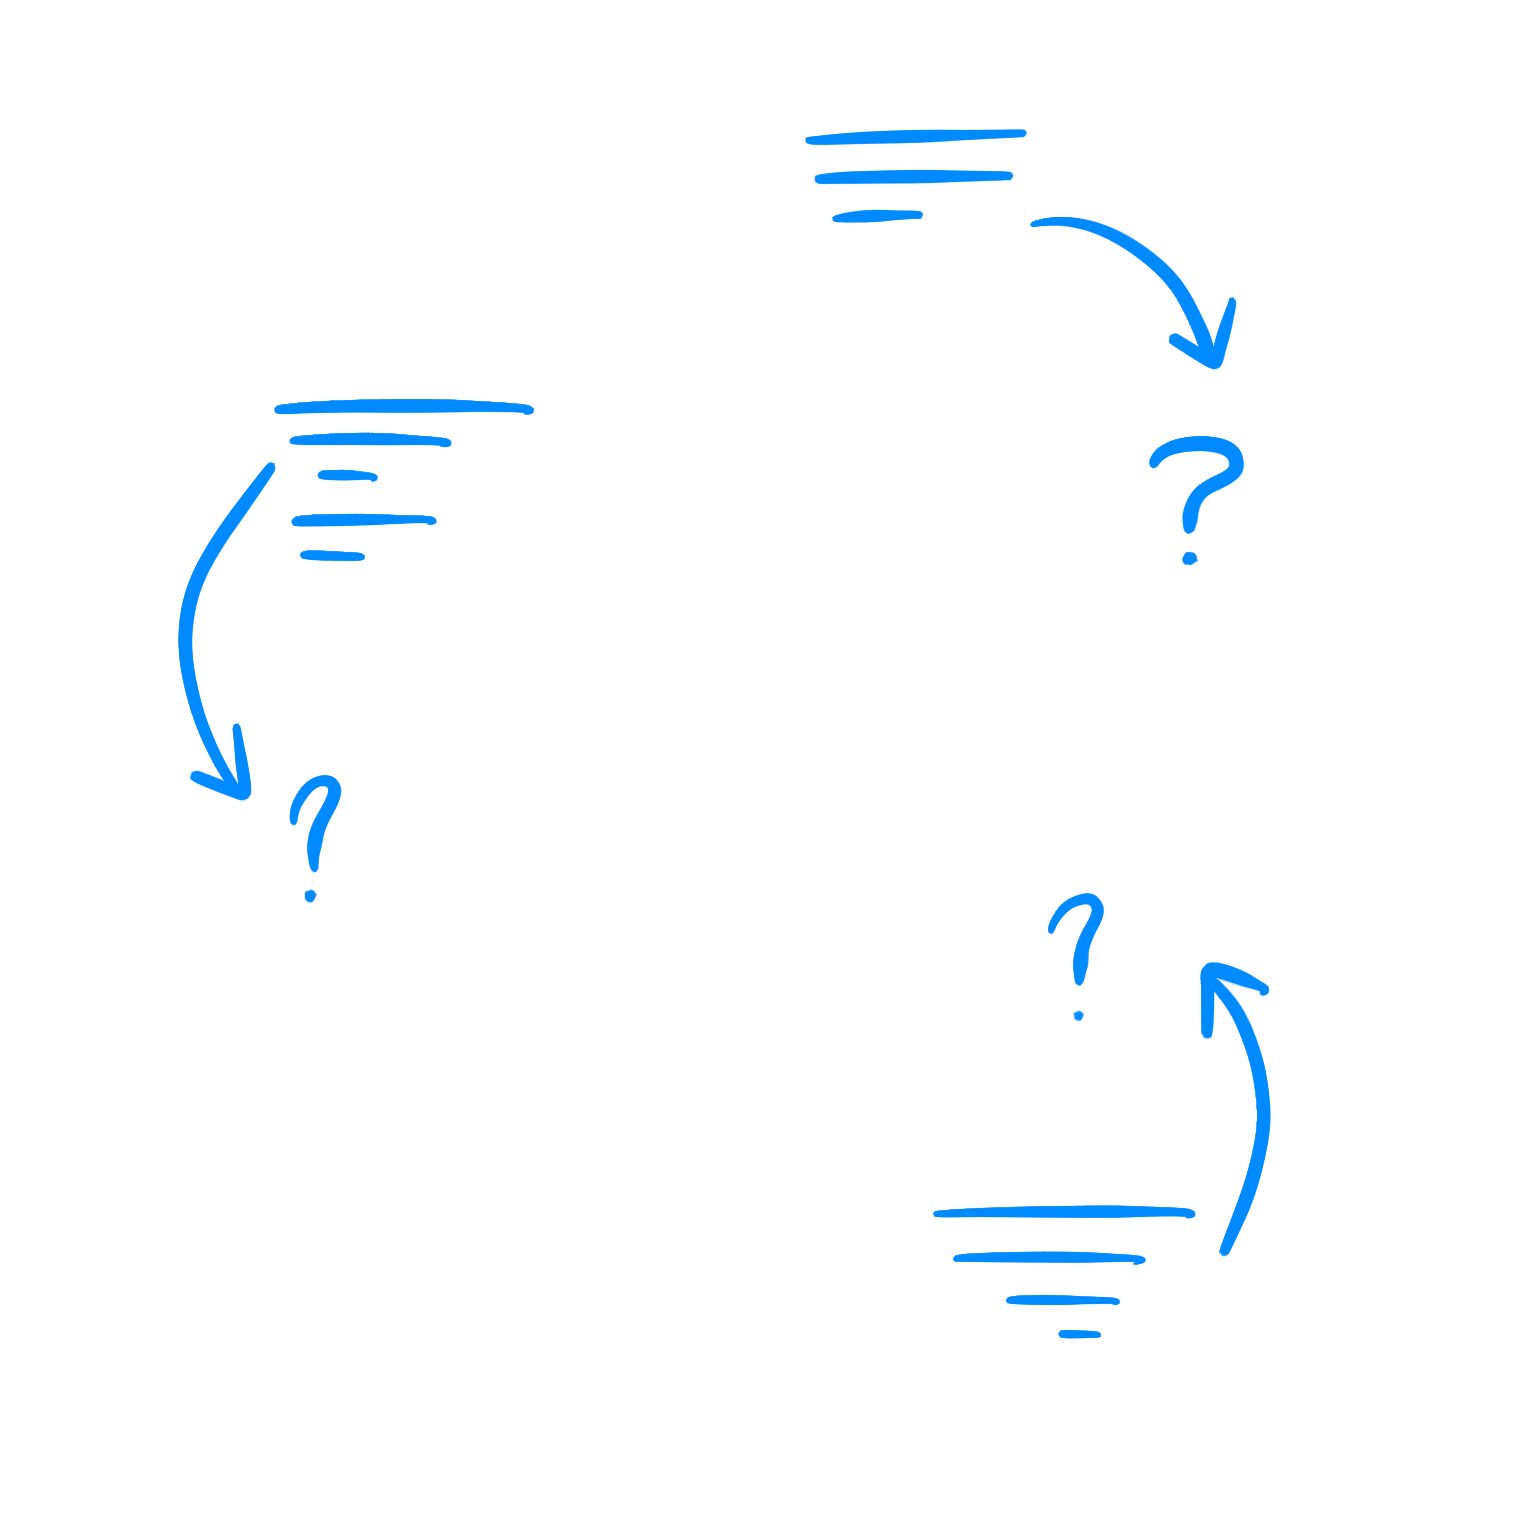 An illustration of a signpost with question marks and little comments scribbled on